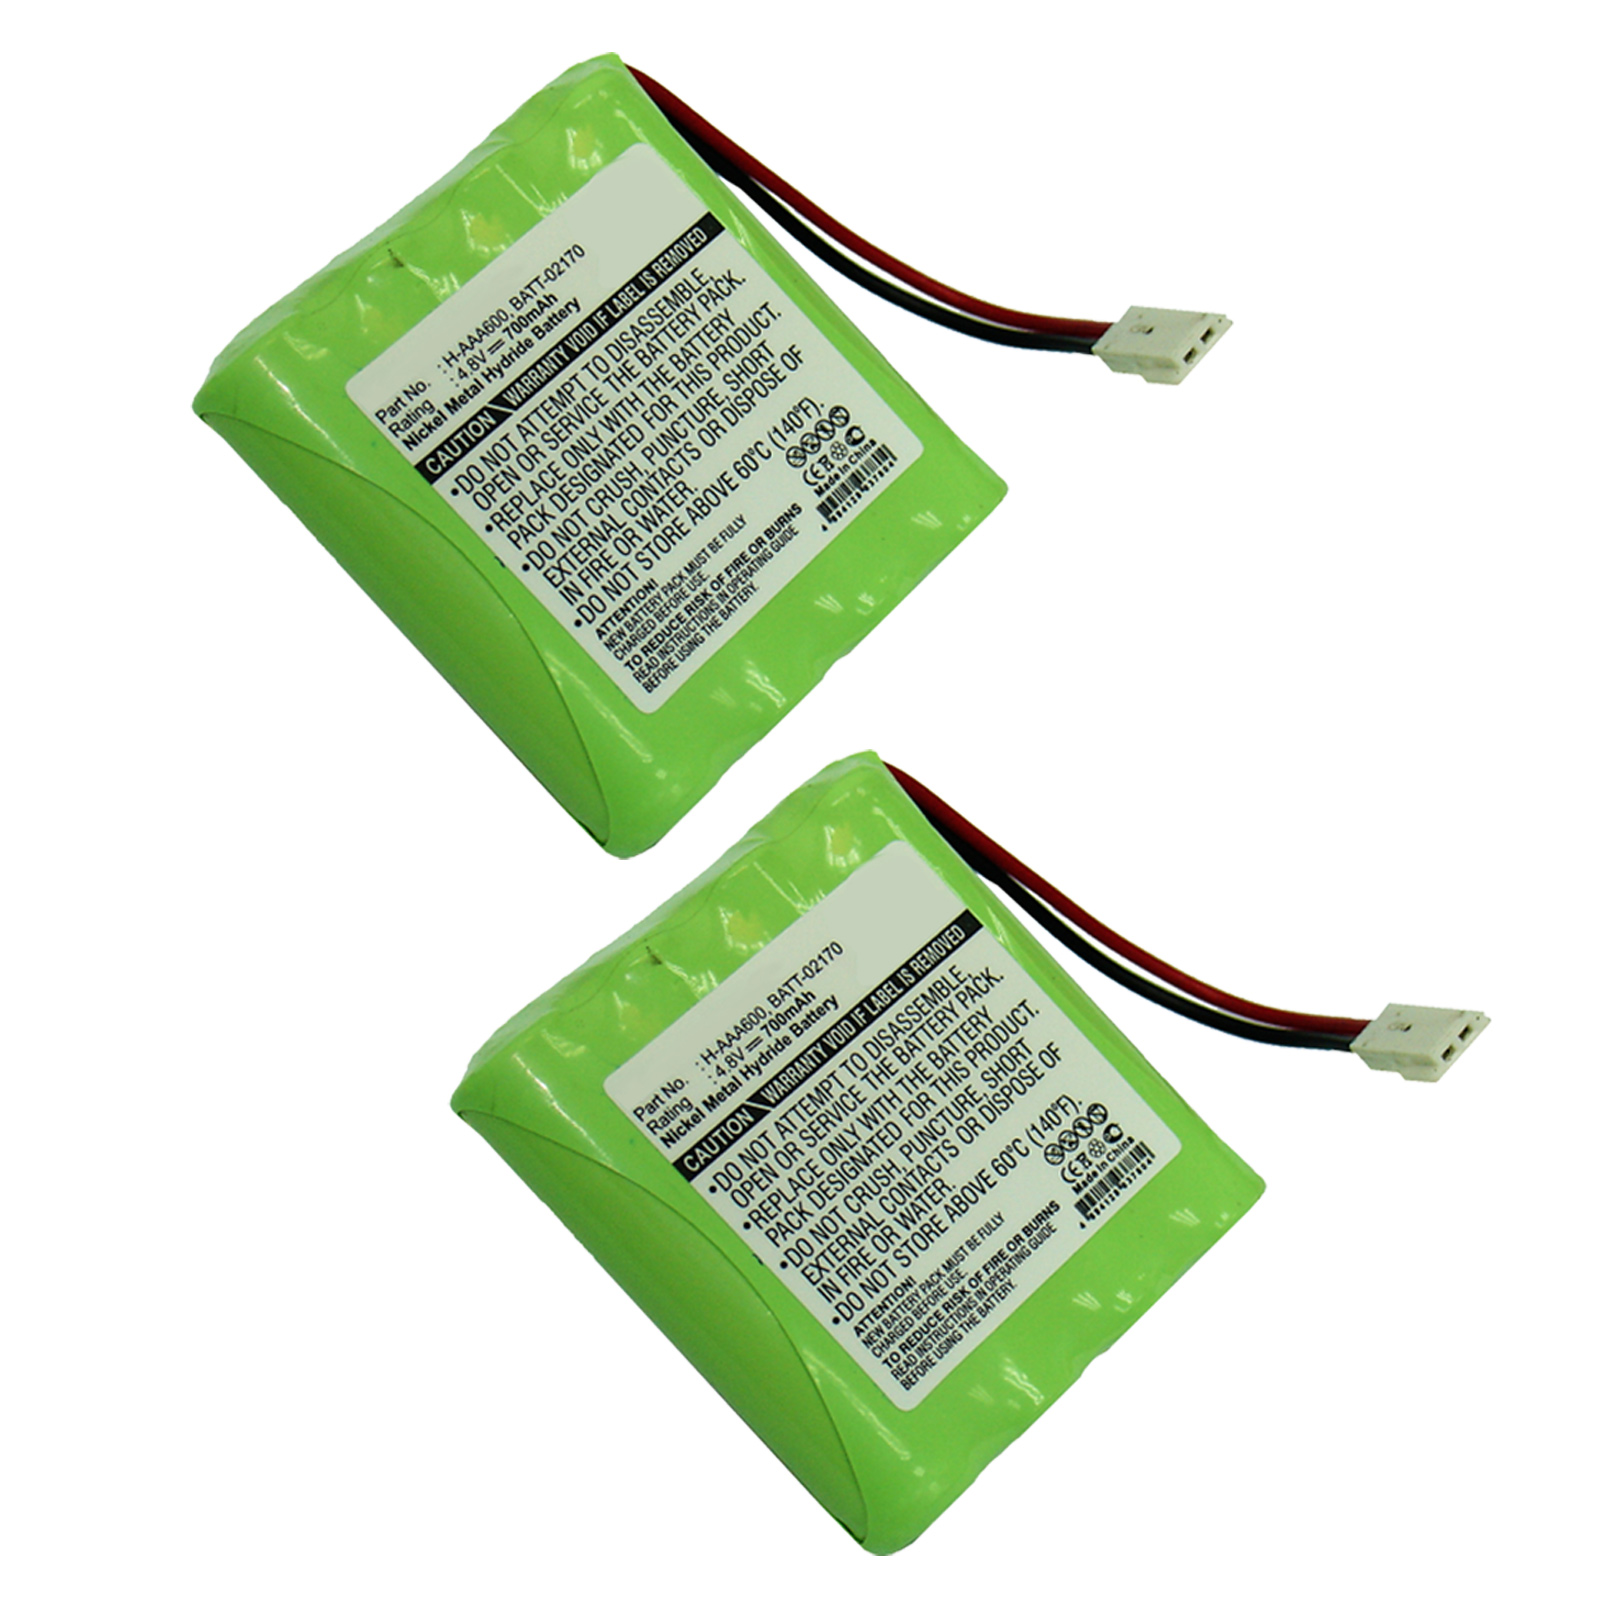 2x 4.8V 700mAh Baby Monitor Battery for Summer Baby 02170 02174 02320 H-AAA600